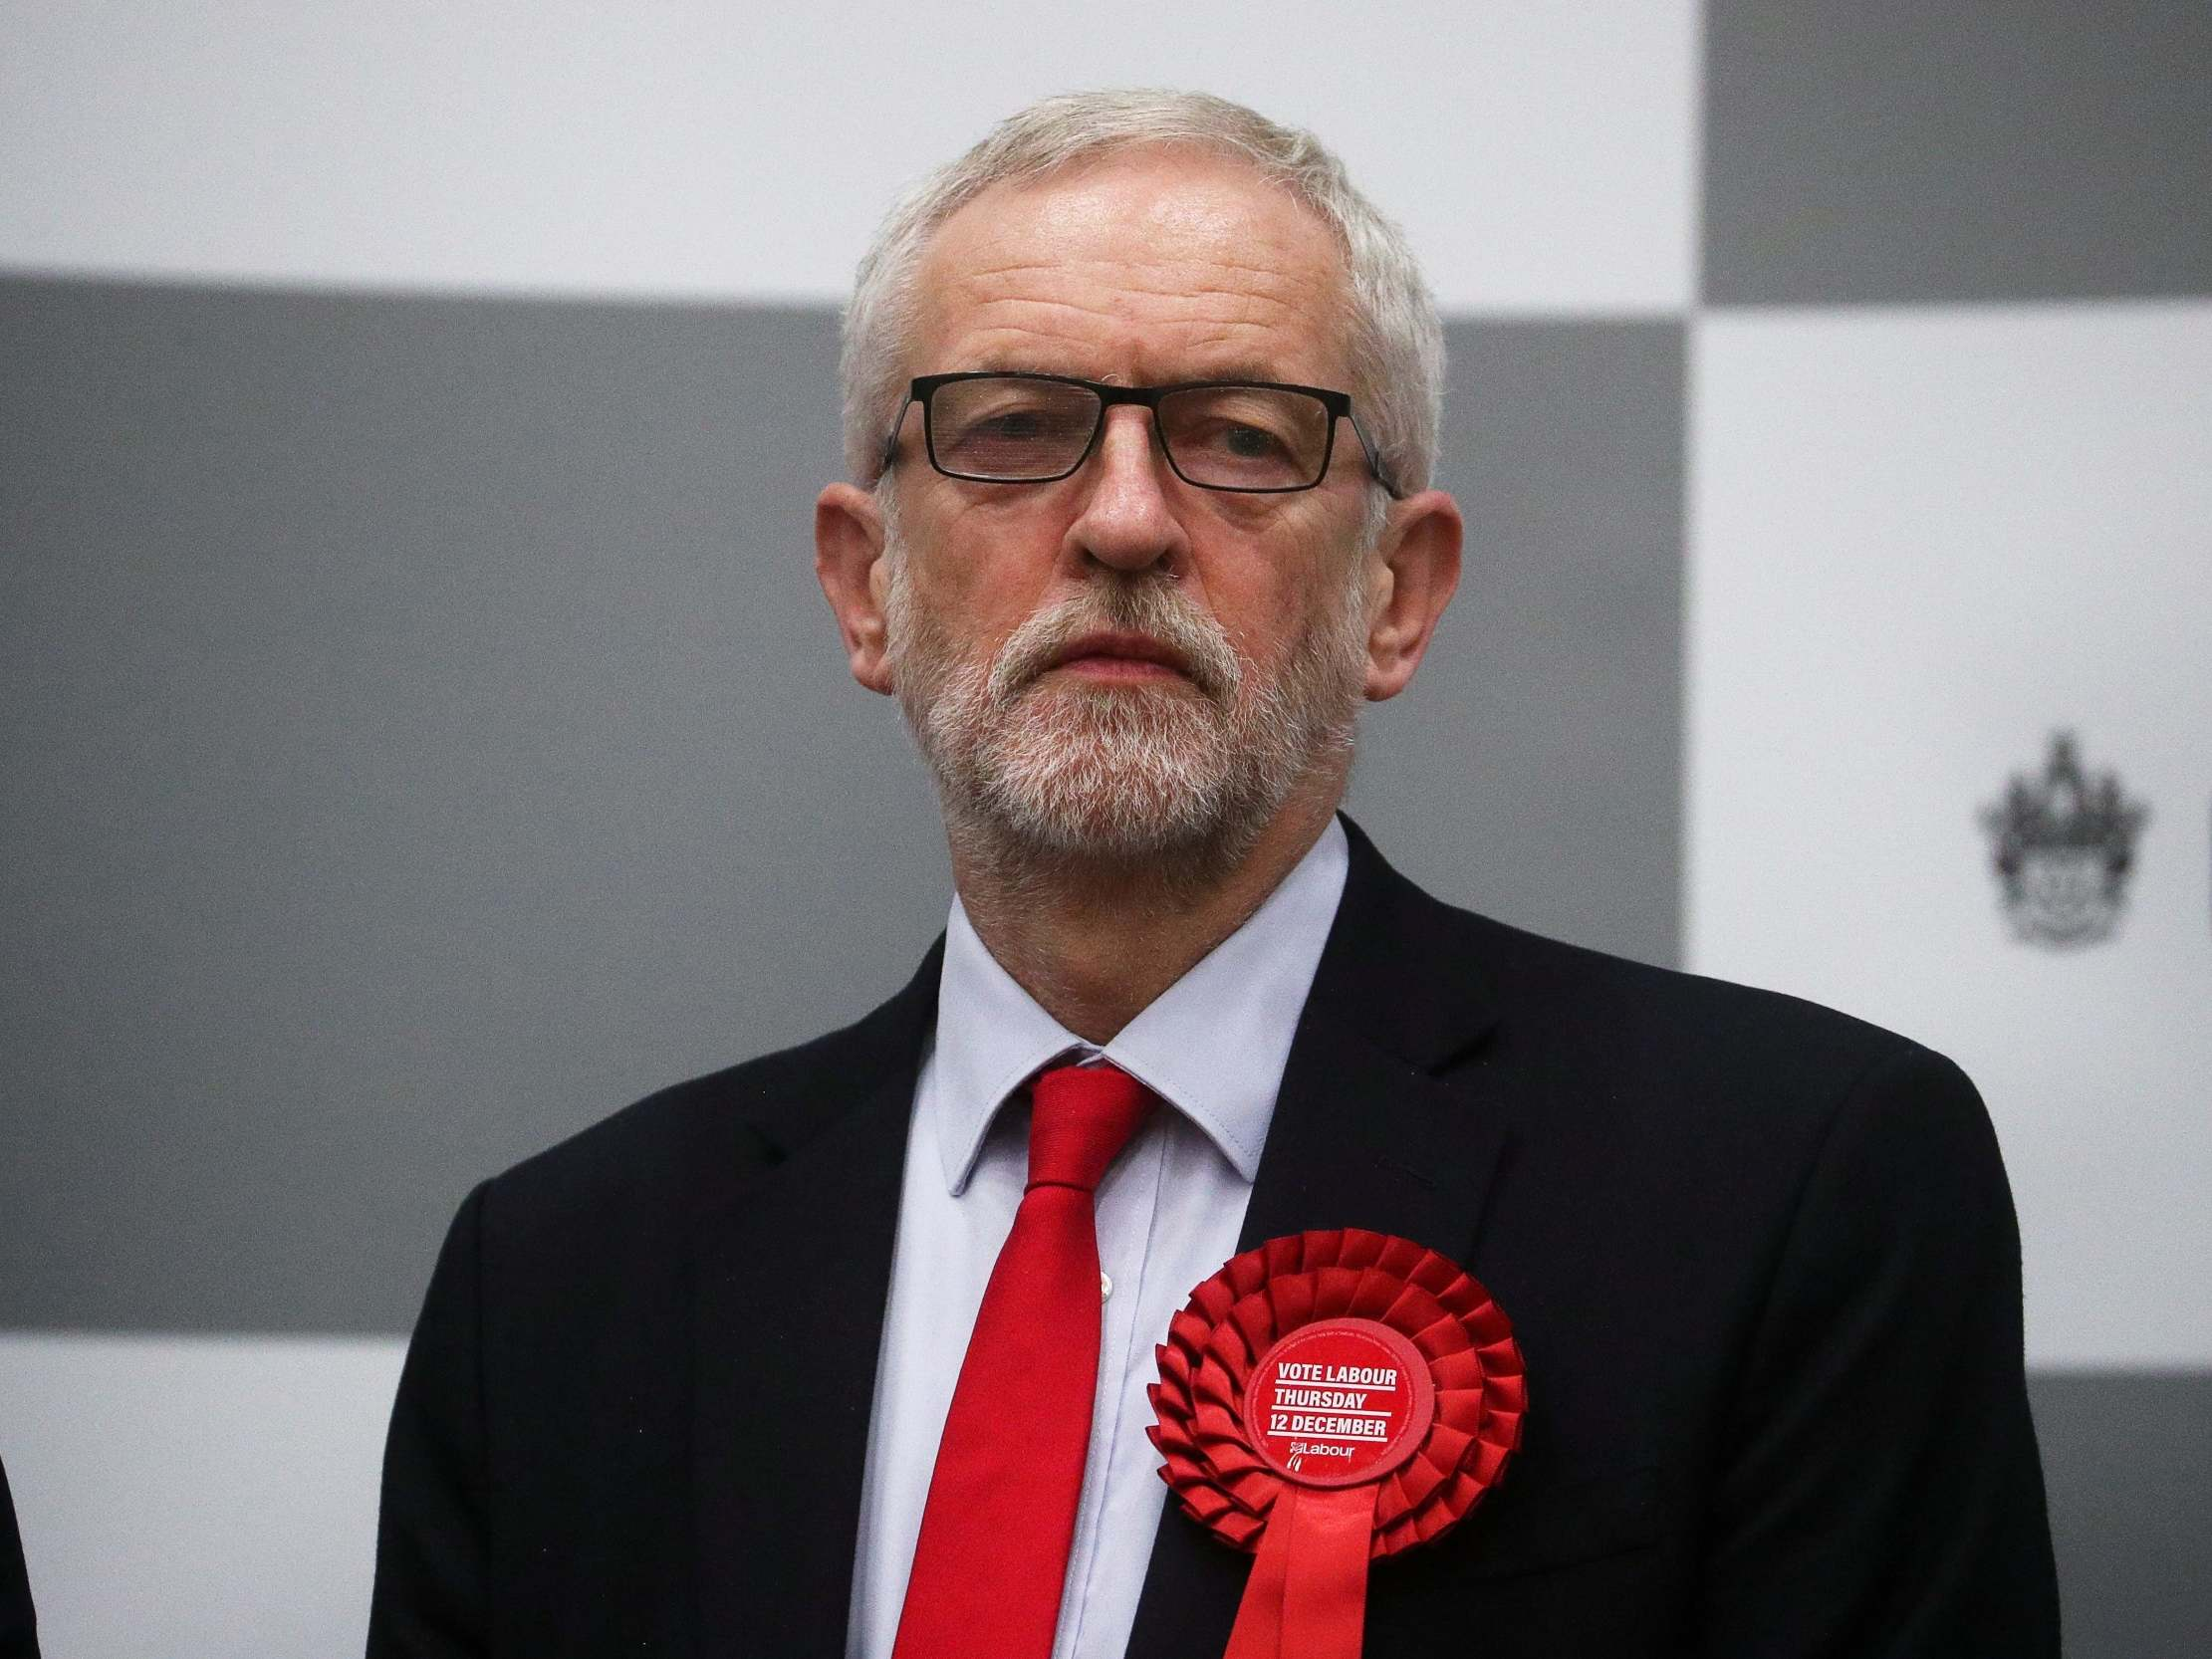 I lost my Redcar seat thanks to Jeremy Corbyn and i'm furious